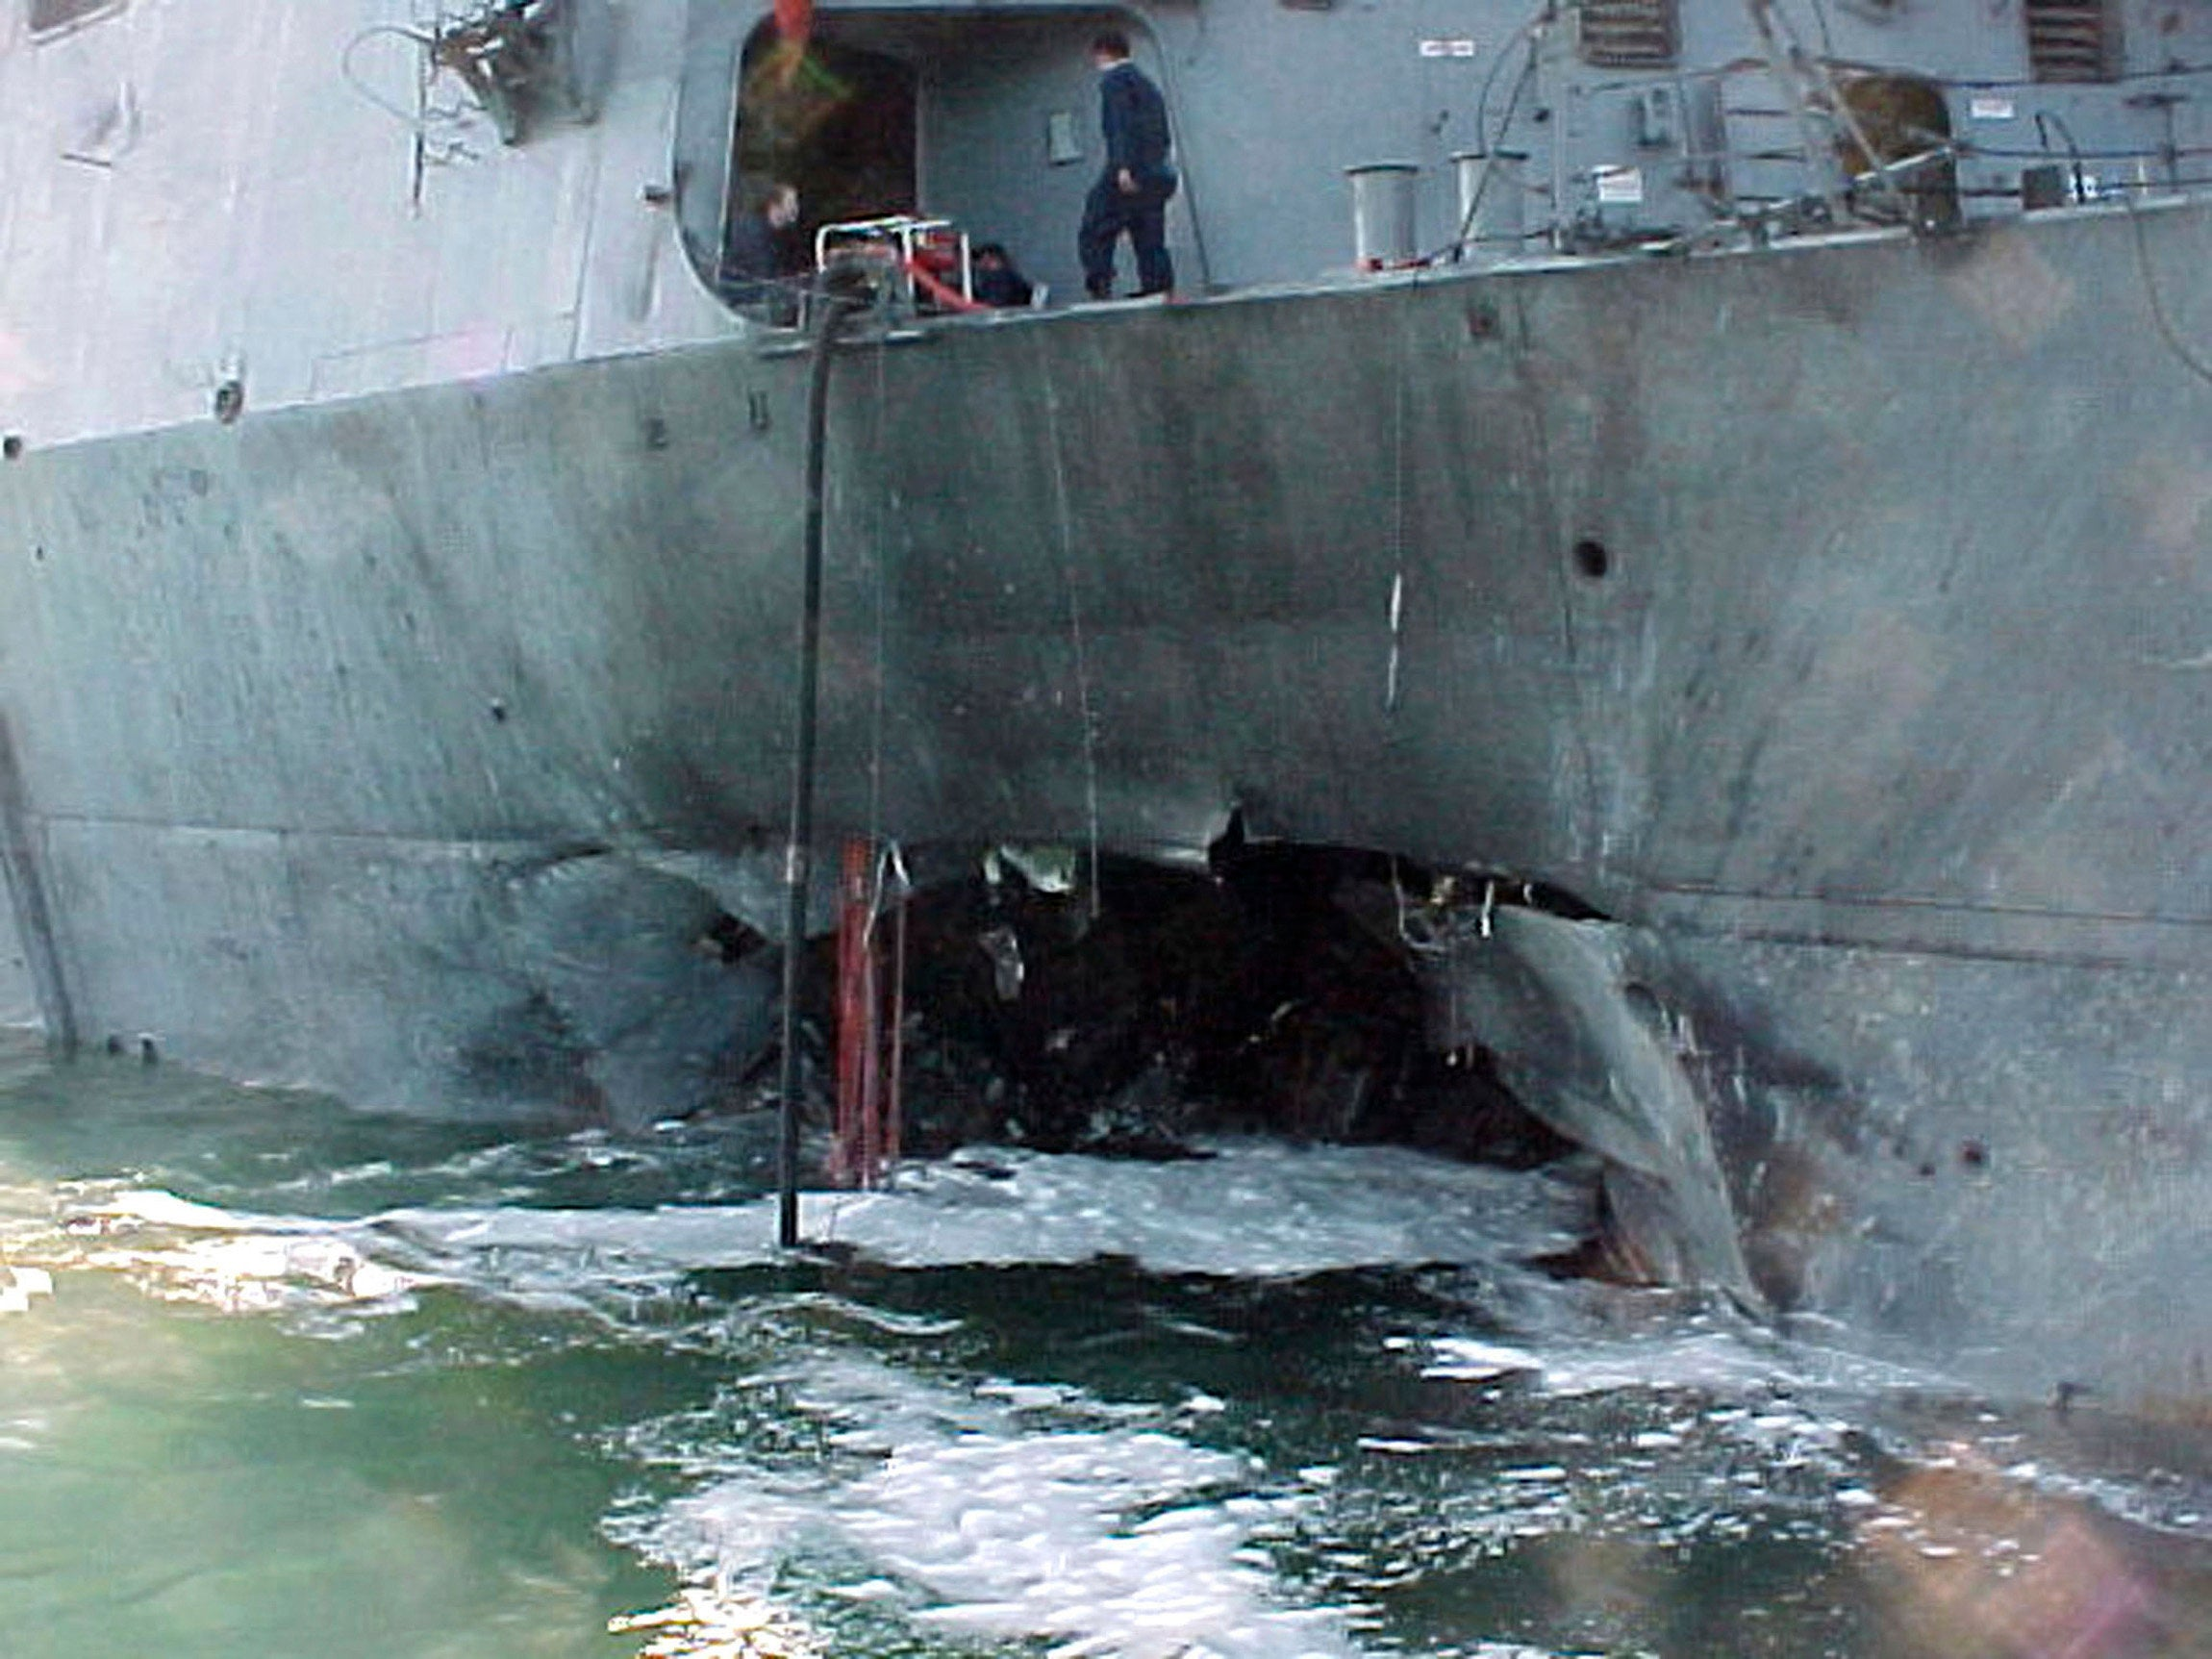 20 years after the attack on the USS Cole, memories of heroism and loss